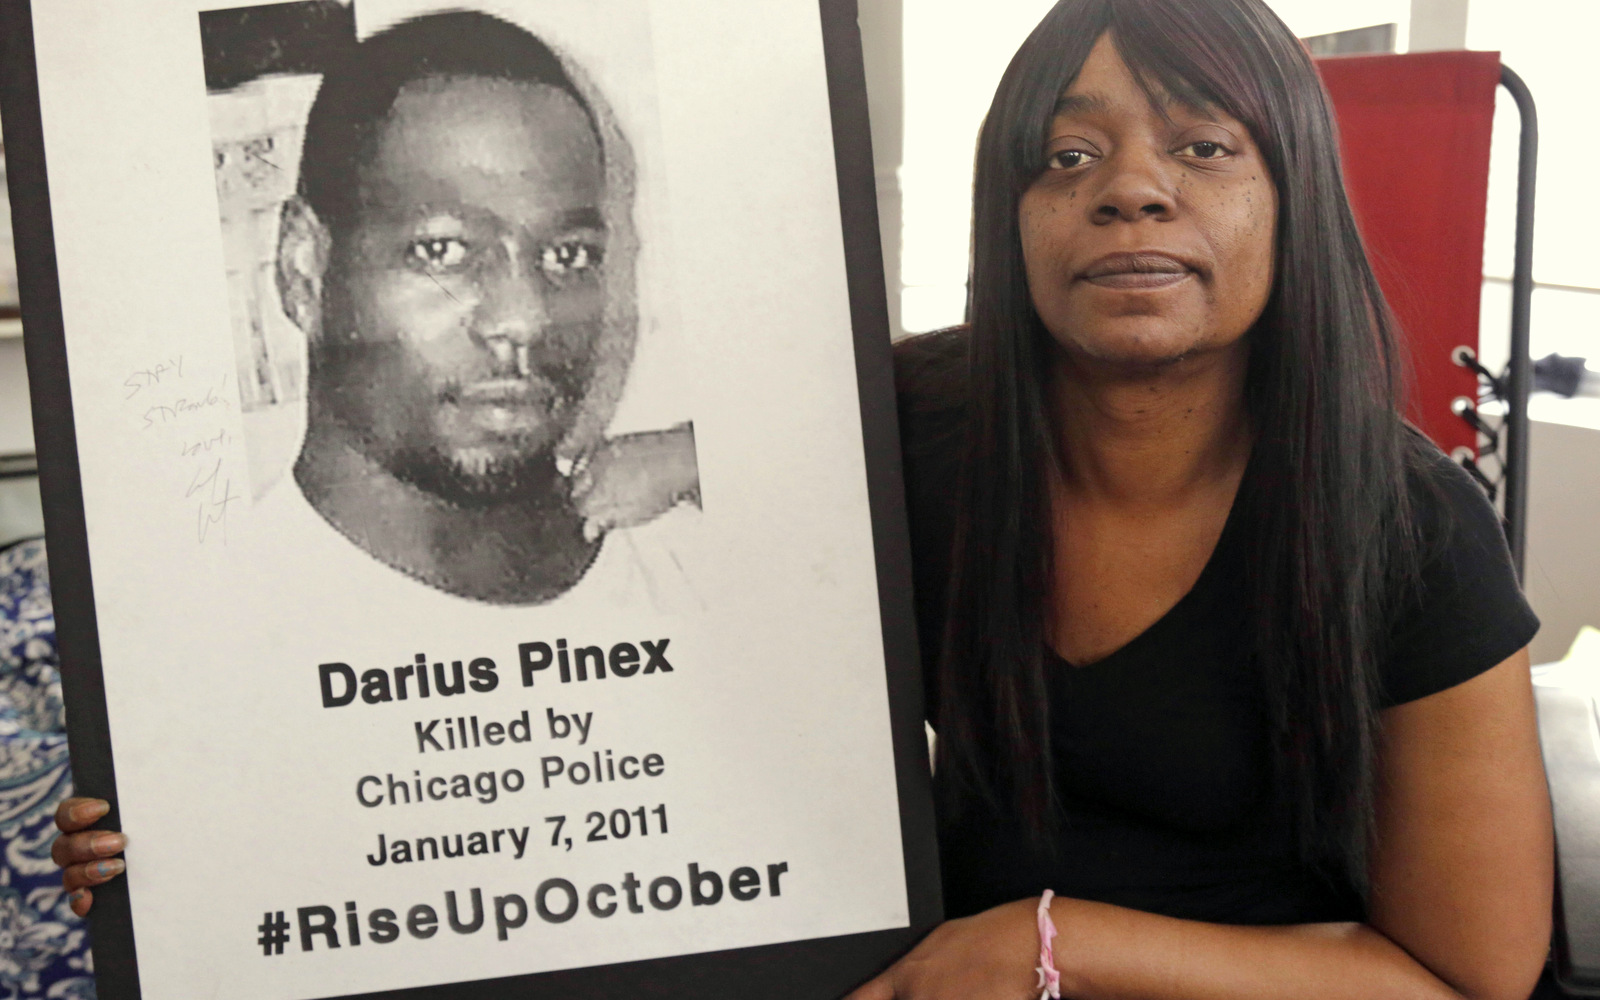 Gloria Pinex holds a photo of her son, Darius Pinex, at her home in Chicago. Pinex sued the city after her son was killed by police in 2011 and on Monday, Jan. 4, 2016, a judge accused a city prosecutor of lying, prompting the city's law department to examine dozens of other cases the attorney worked on. (AP Photo/M. Spencer Green)